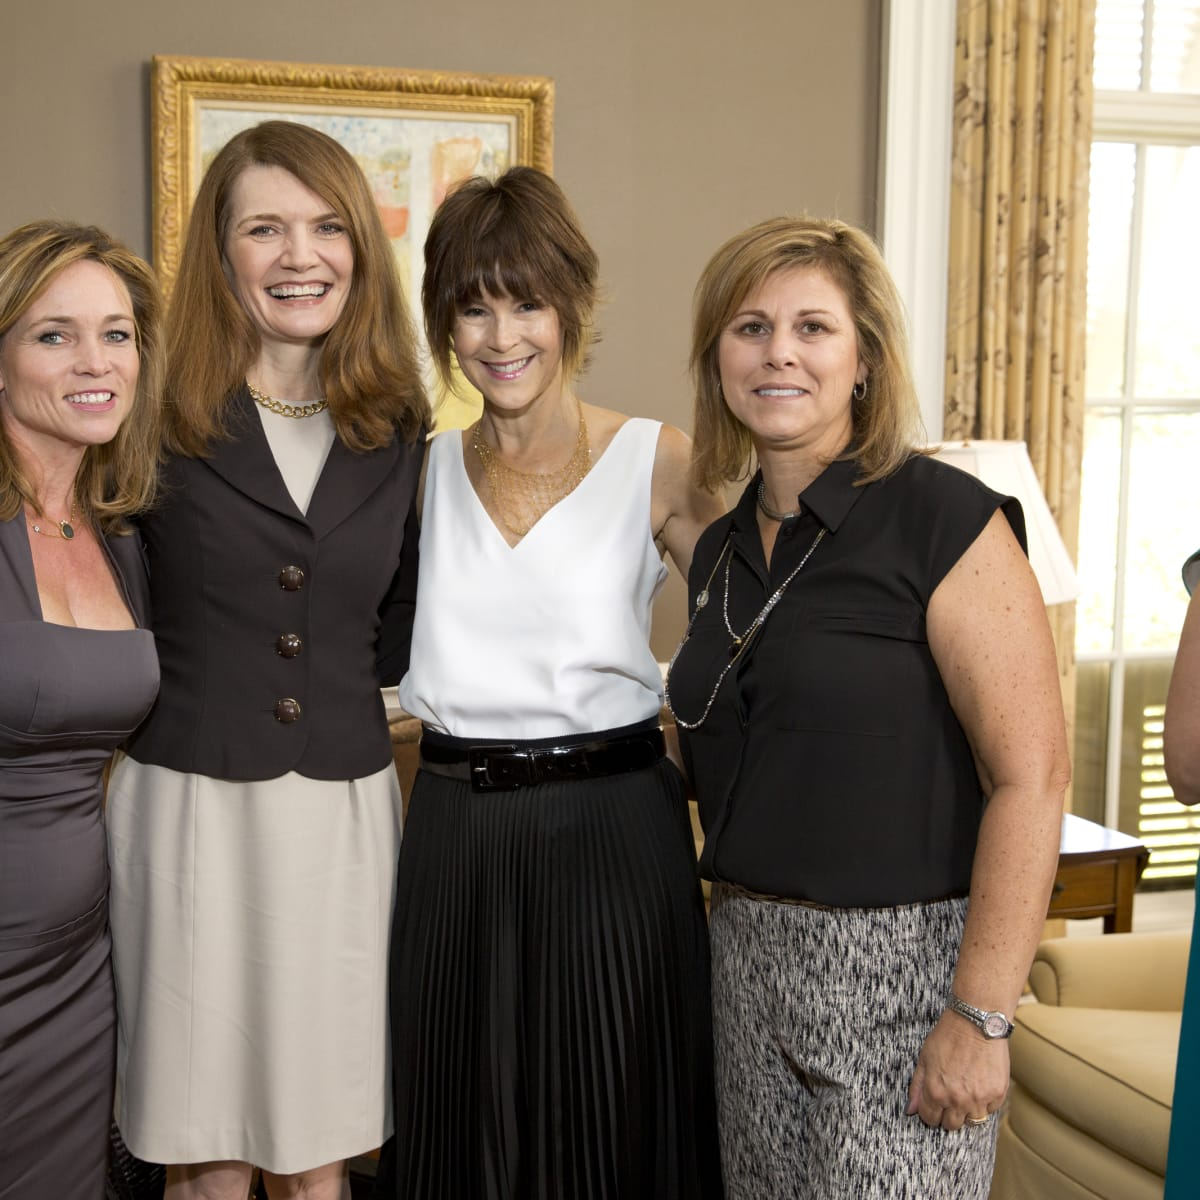 News, Shelby, Small Steps luncheon, Sept. 2015, Aimee Snoots, Jeannette Walls, Julie Howie, and Amy Howie